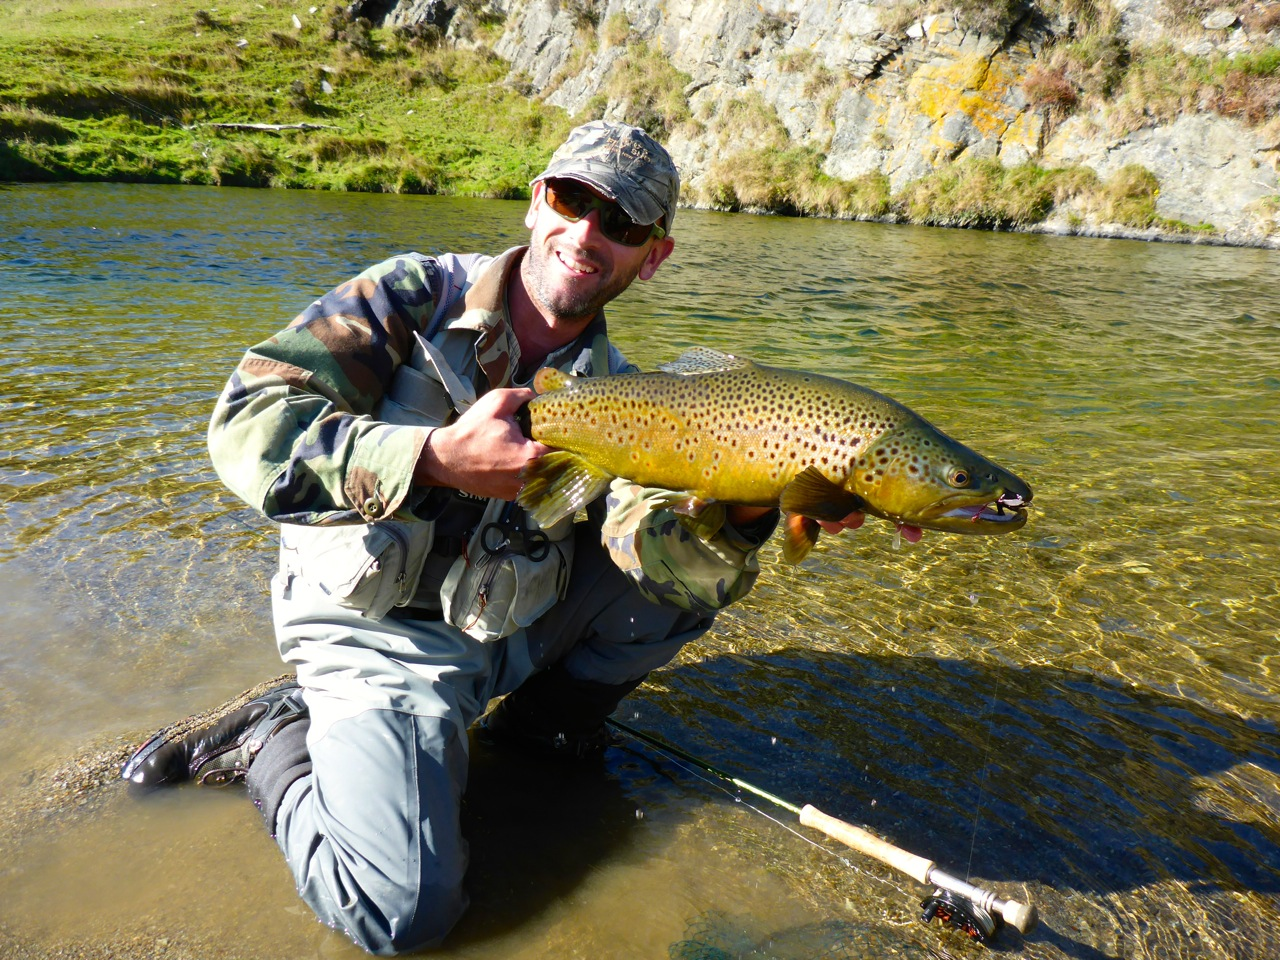 Although we managed a great fish each, The overall fishing was poor with very low numbers of trout about for our 2 days..